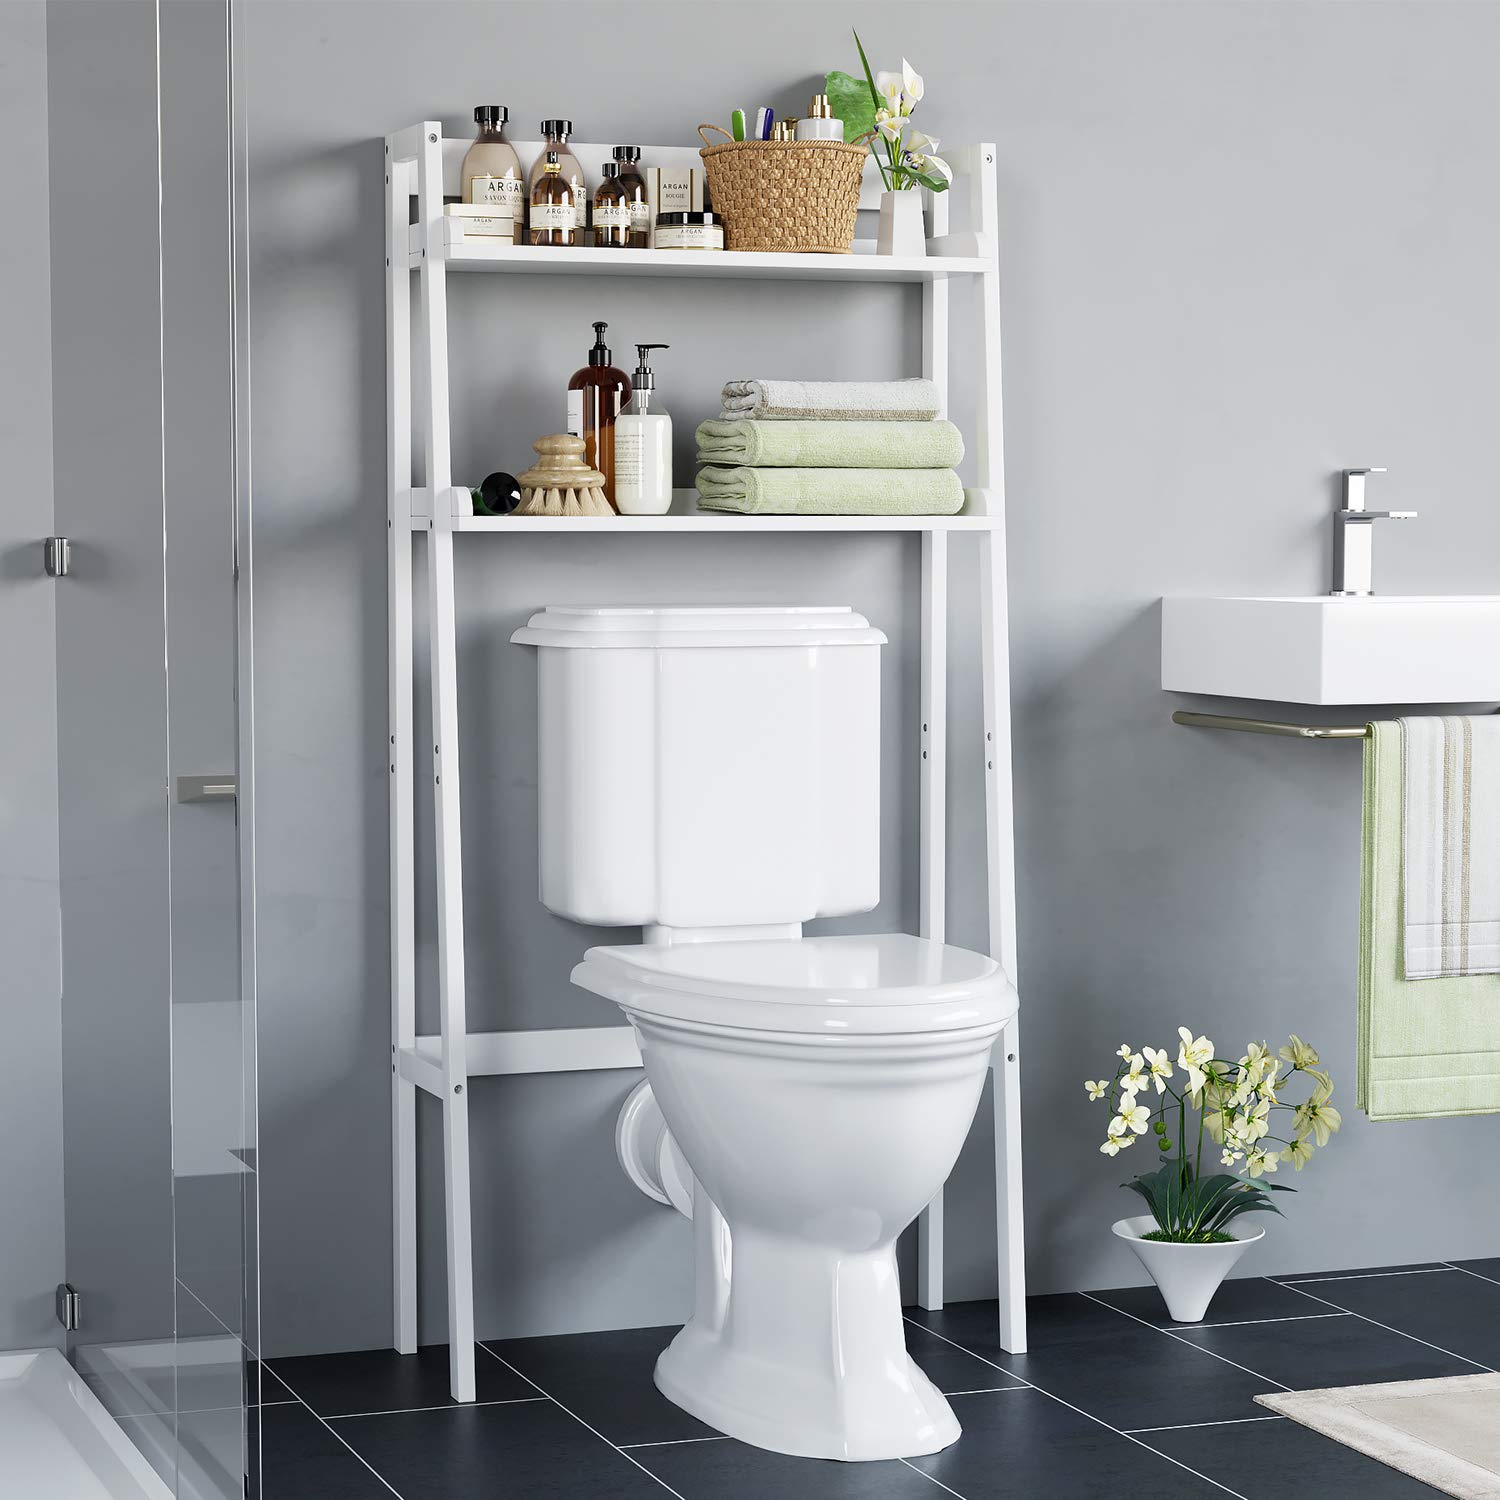 HOMECHO Bathroom Shelf Over The Toilet with 2-Tier Open Storage Shelves Rack Organizer for Bathroom Spacesaver White Finish HMC-MD-002 by HOMECHO